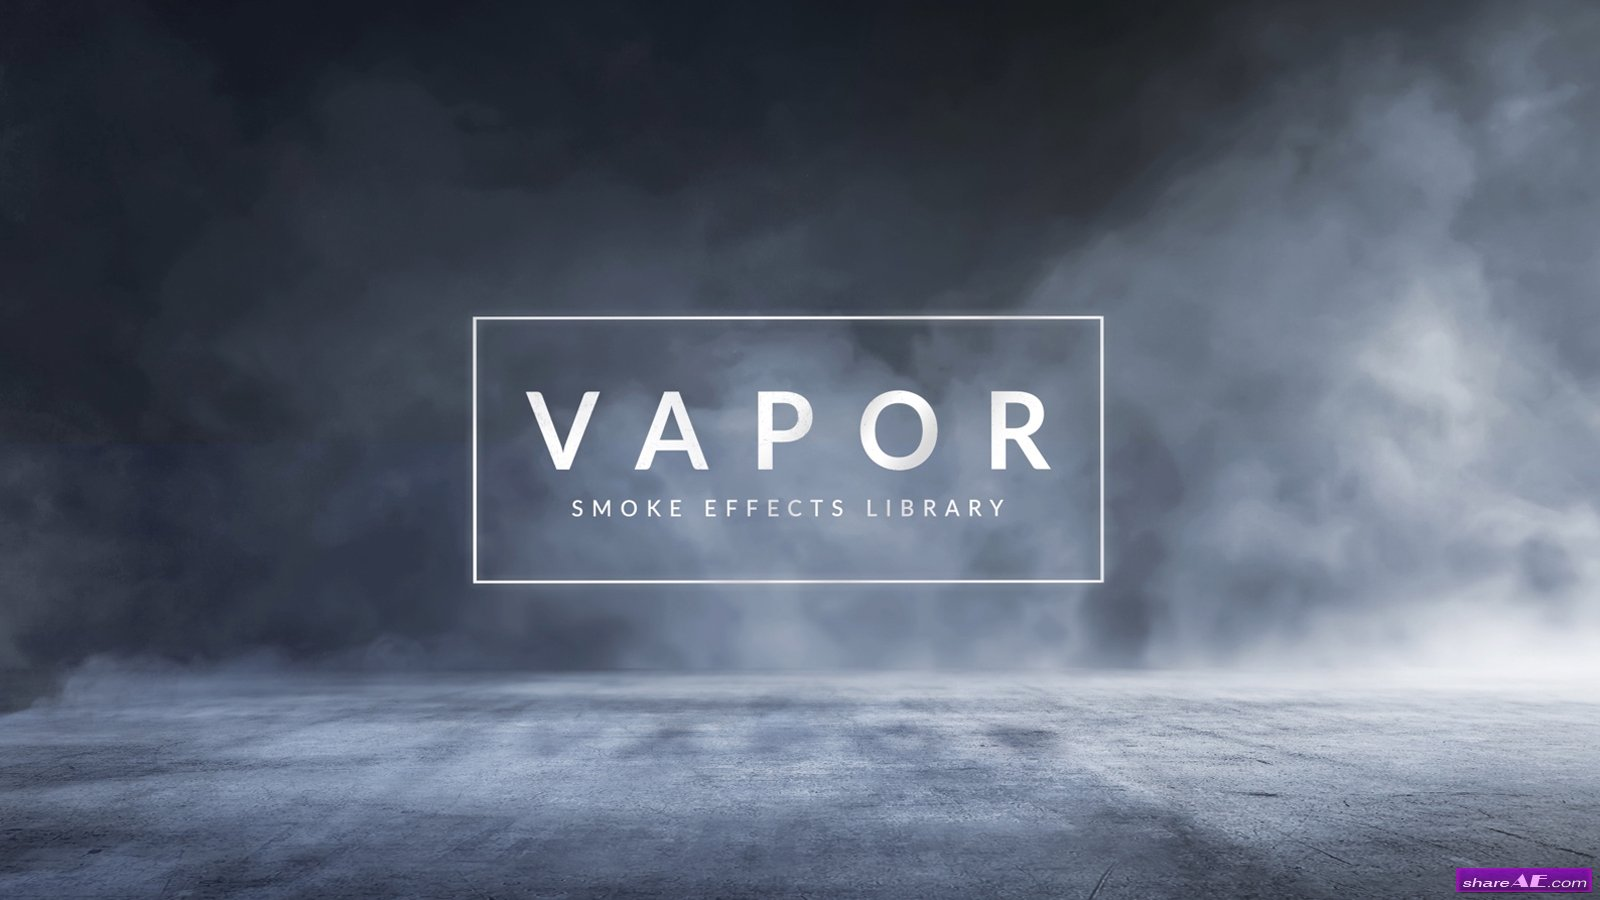 Vapor 100+ Smoke & Fog Effects (RocketStock)